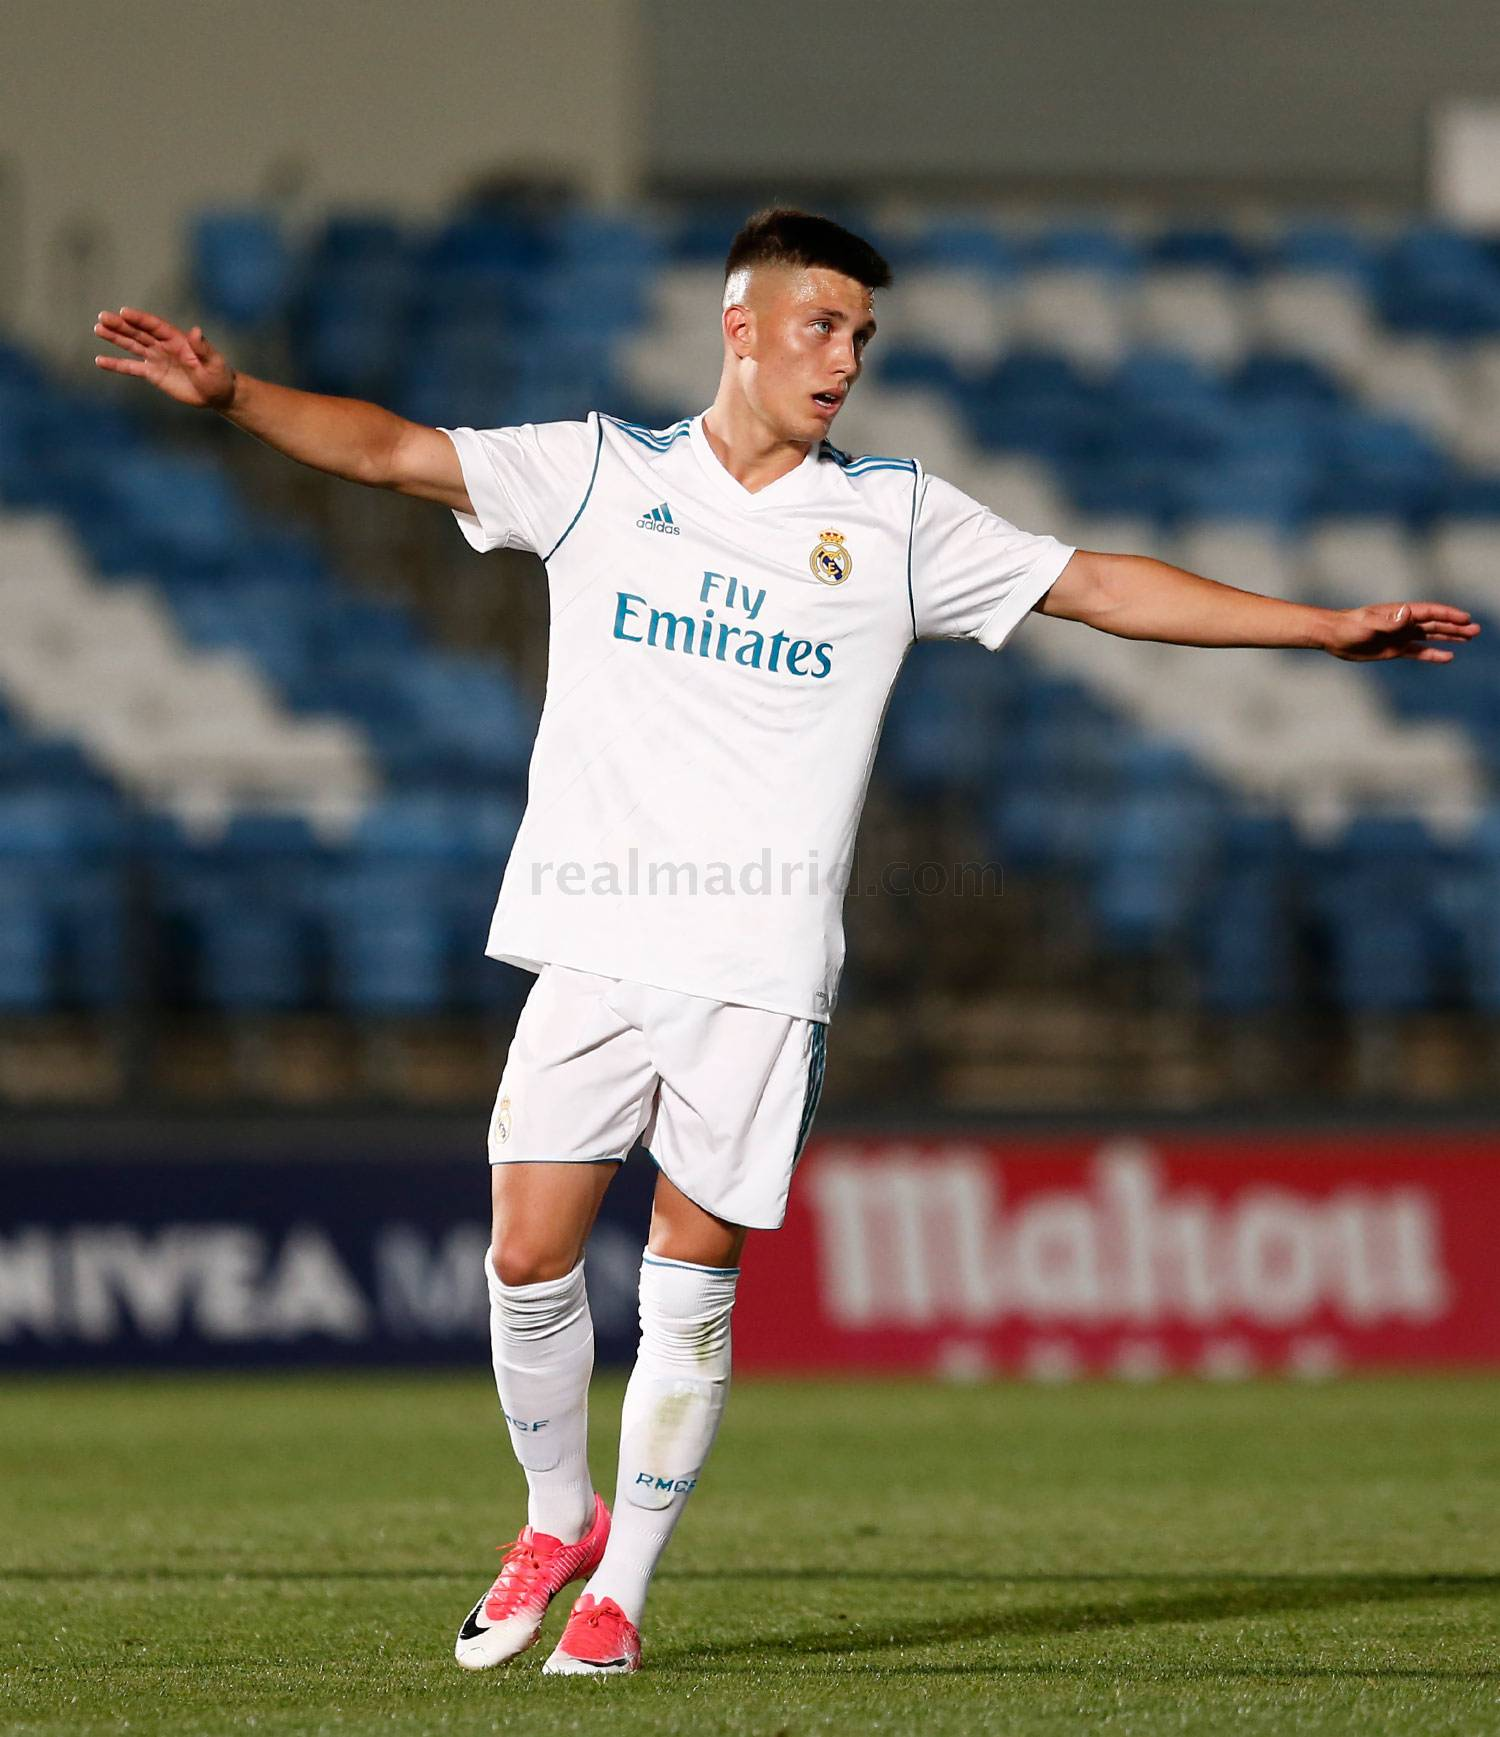 Real Madrid - Real Madrid Castilla - Valladolid B - 12-08-2017